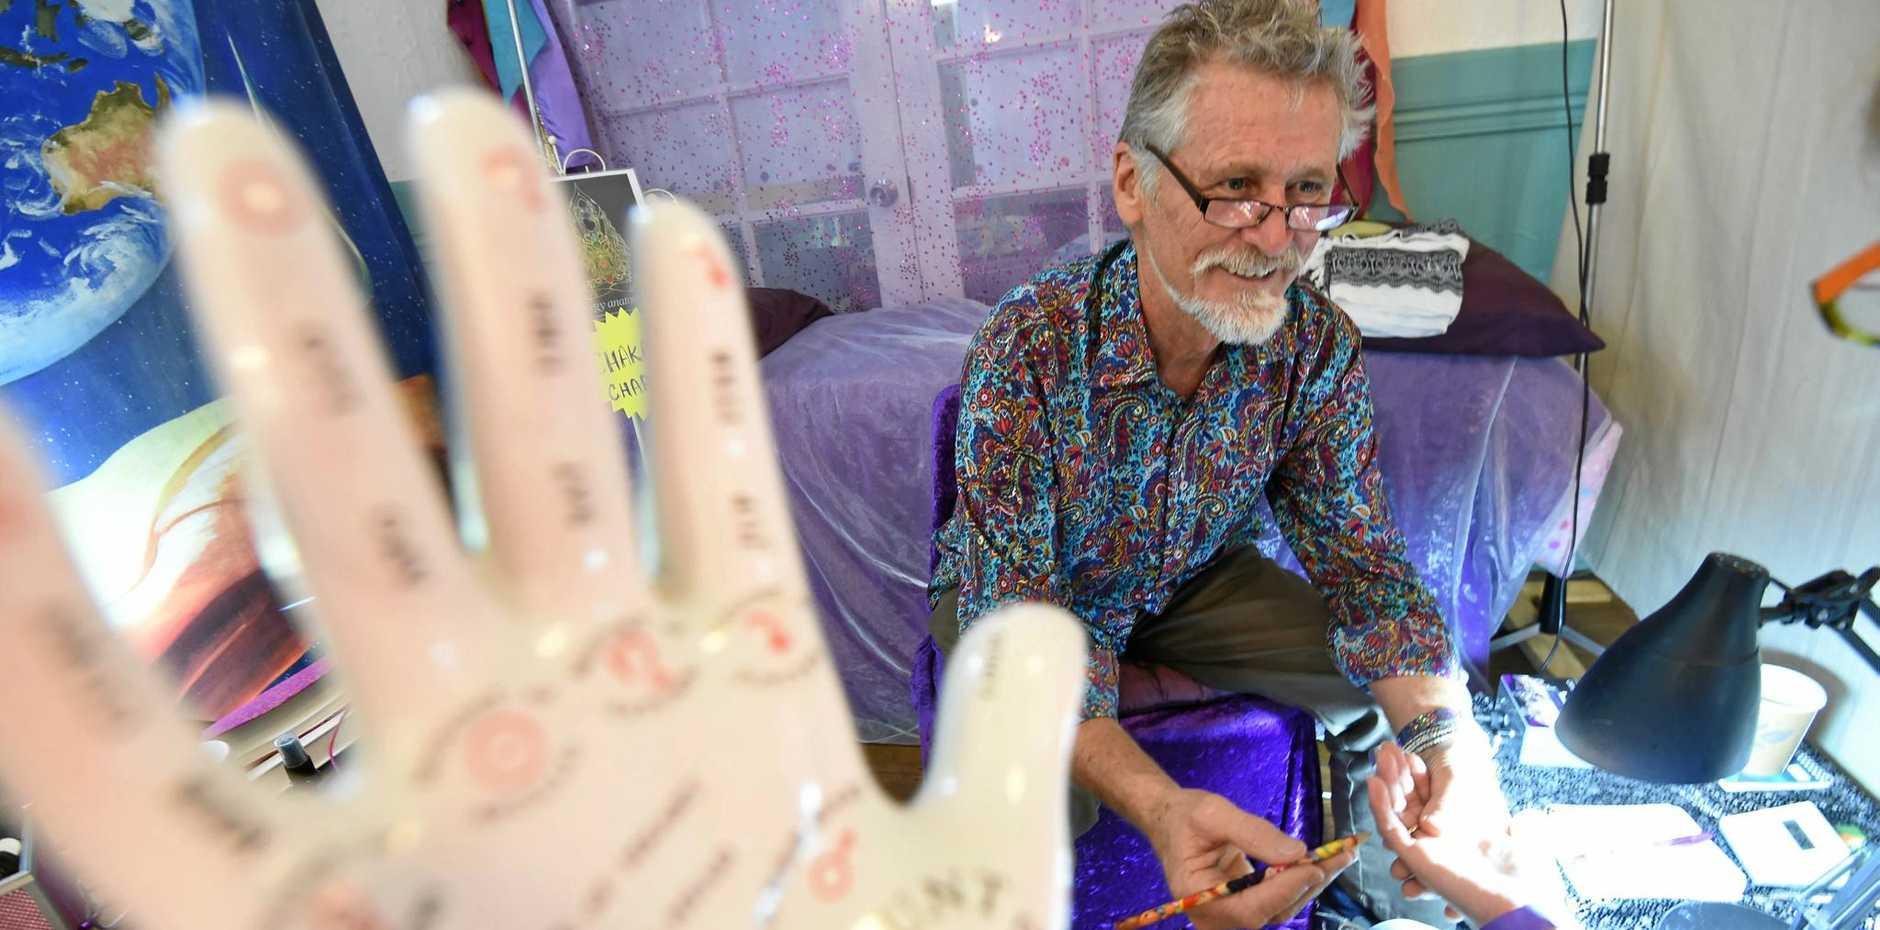 MASTER PALMIST: Ian Cameron gives a reading at the Moonlight Mystic Fair in Bangalow.